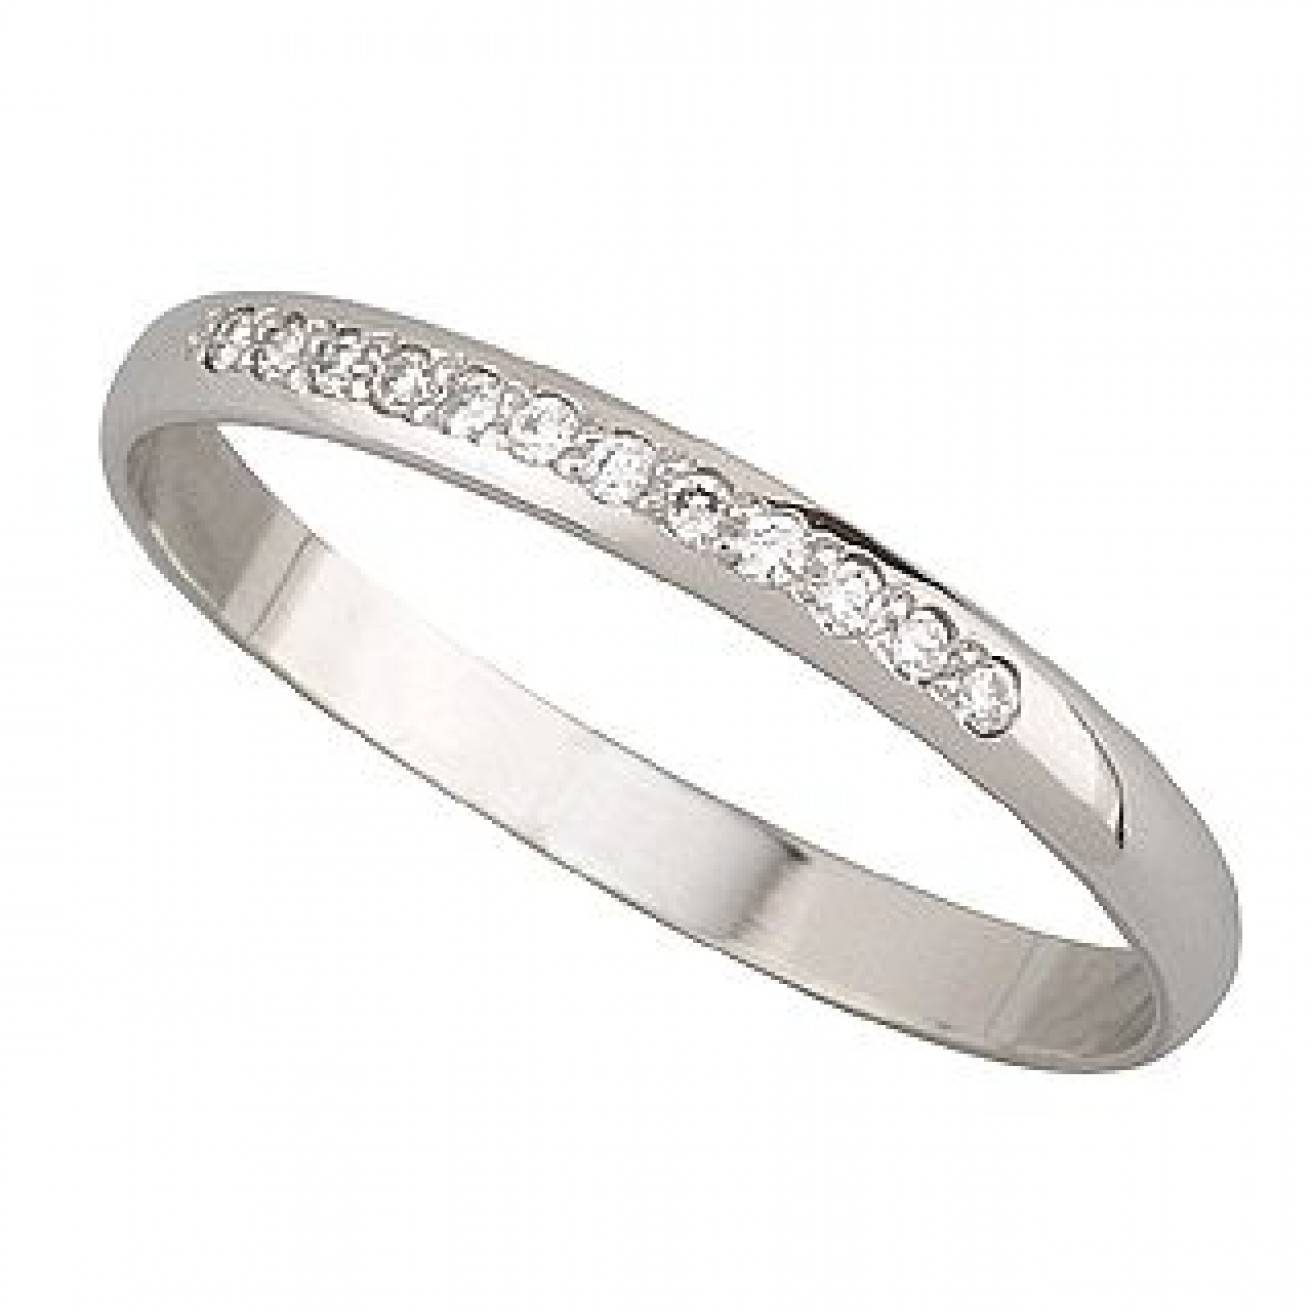 Buy Platinum Wedding Bands Online – Fraser Hart Within Diamond Platinum Wedding Rings (View 4 of 15)